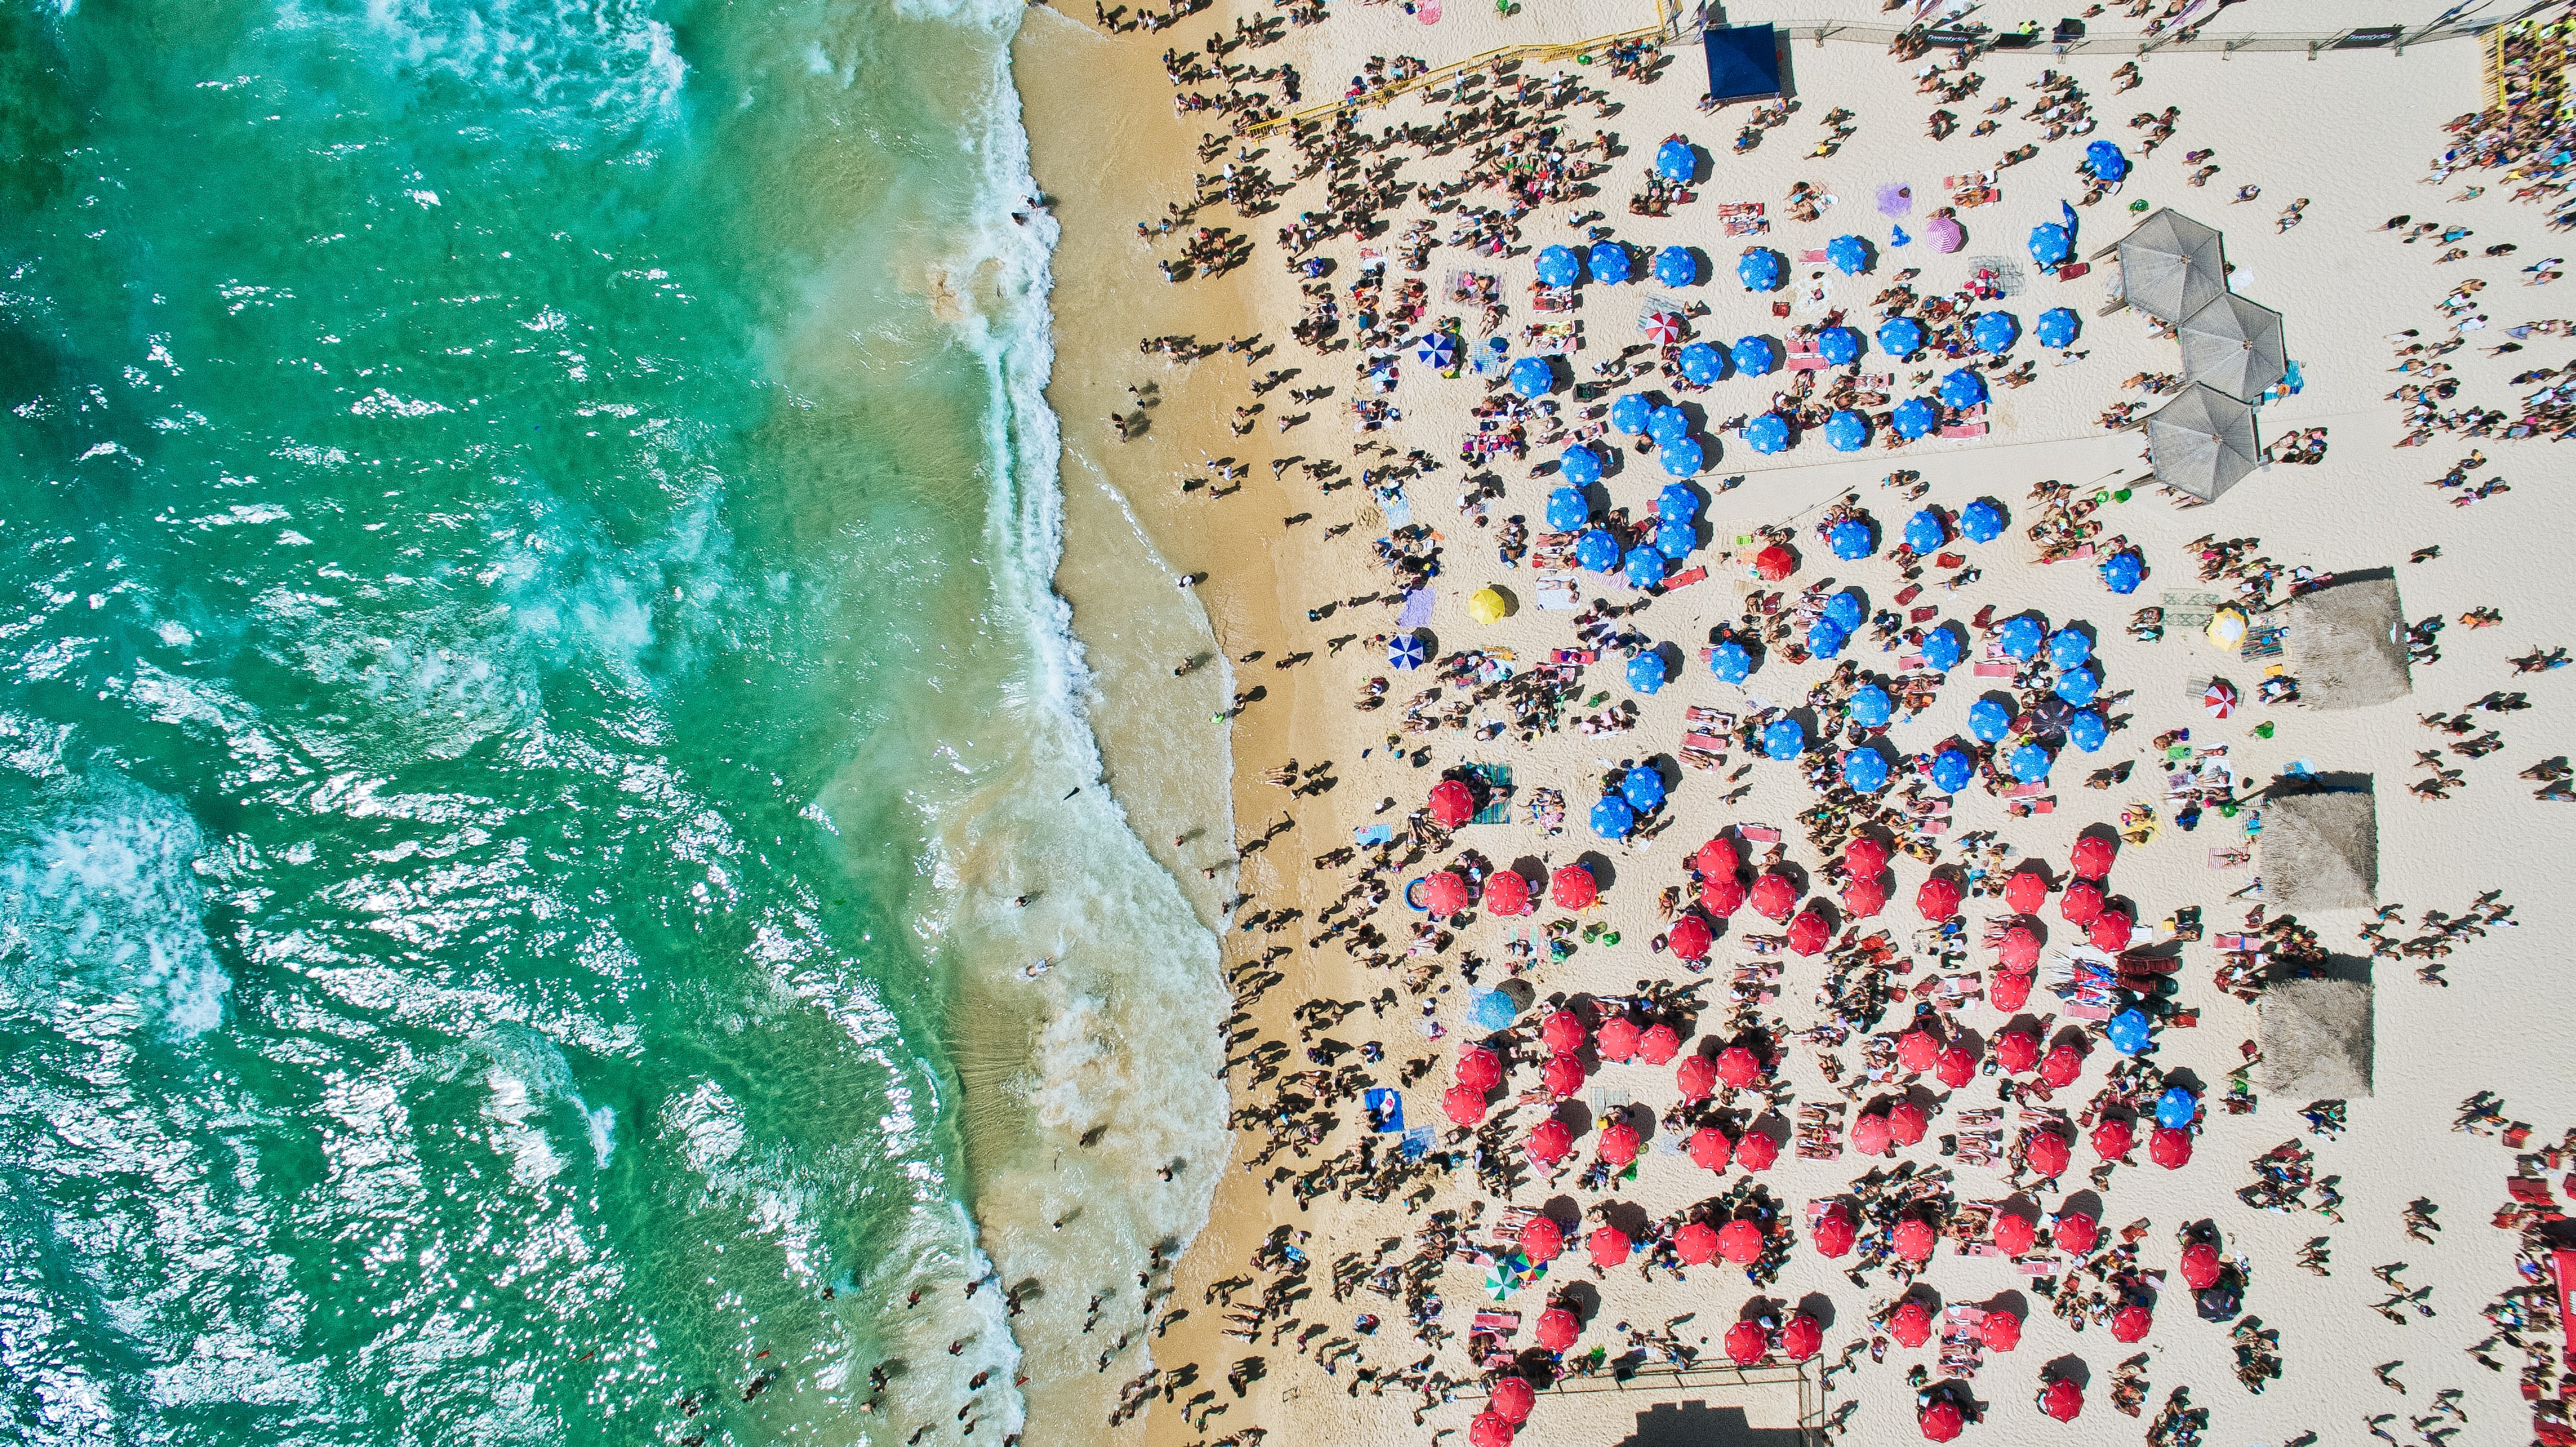 An aerial shot of a crowded beach with vacationers sheltering from the sun under red and blue umbrellas